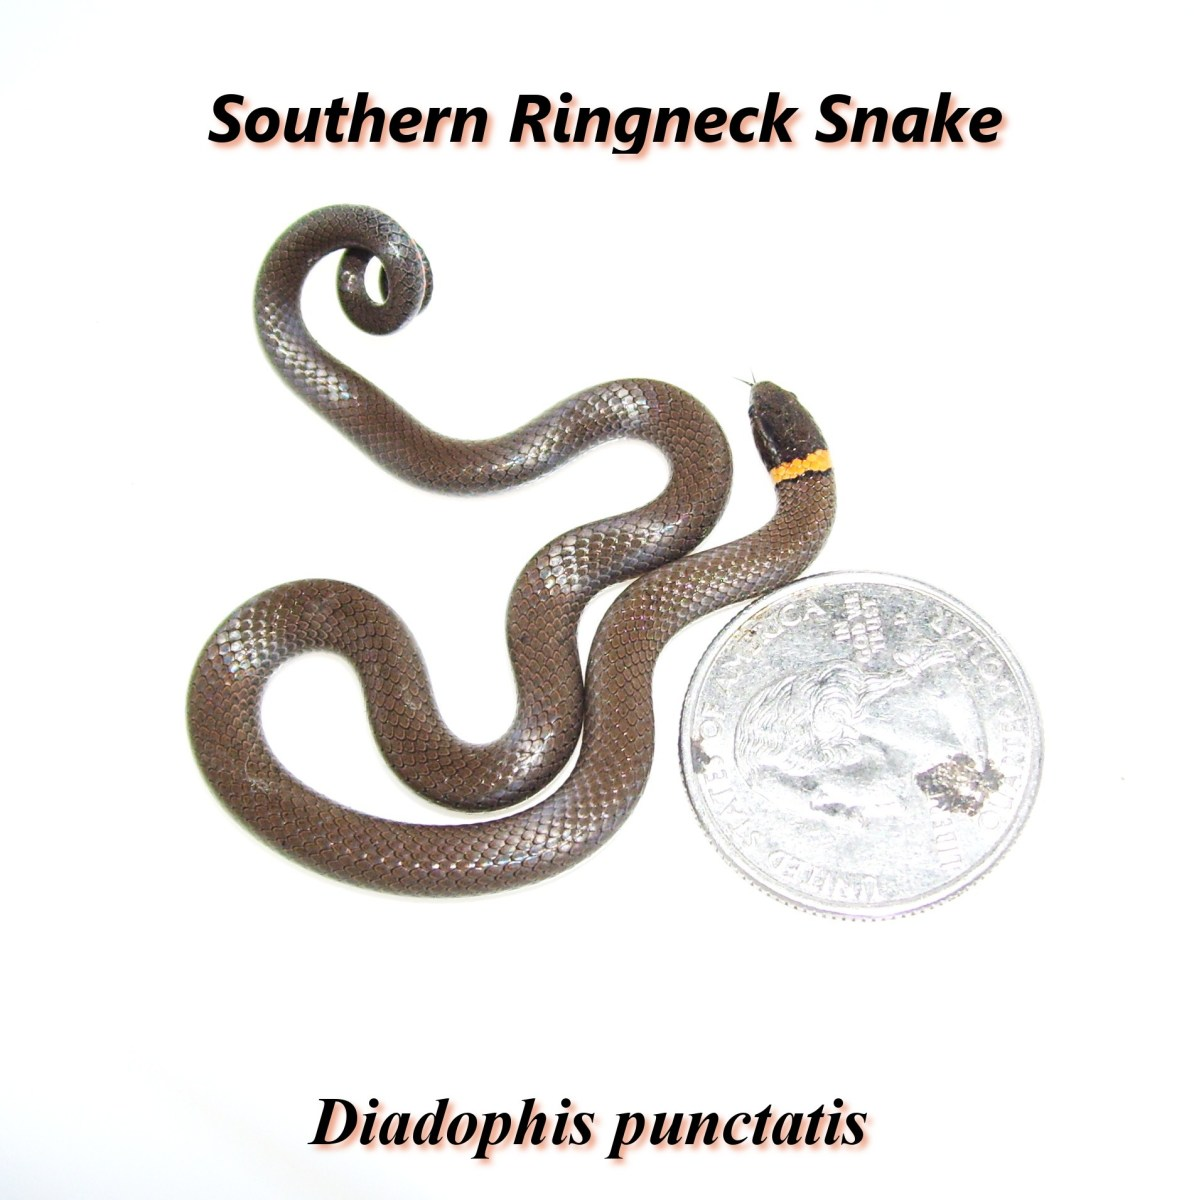 Southern Ringneck Snake | A Little Oklahoma Reptile